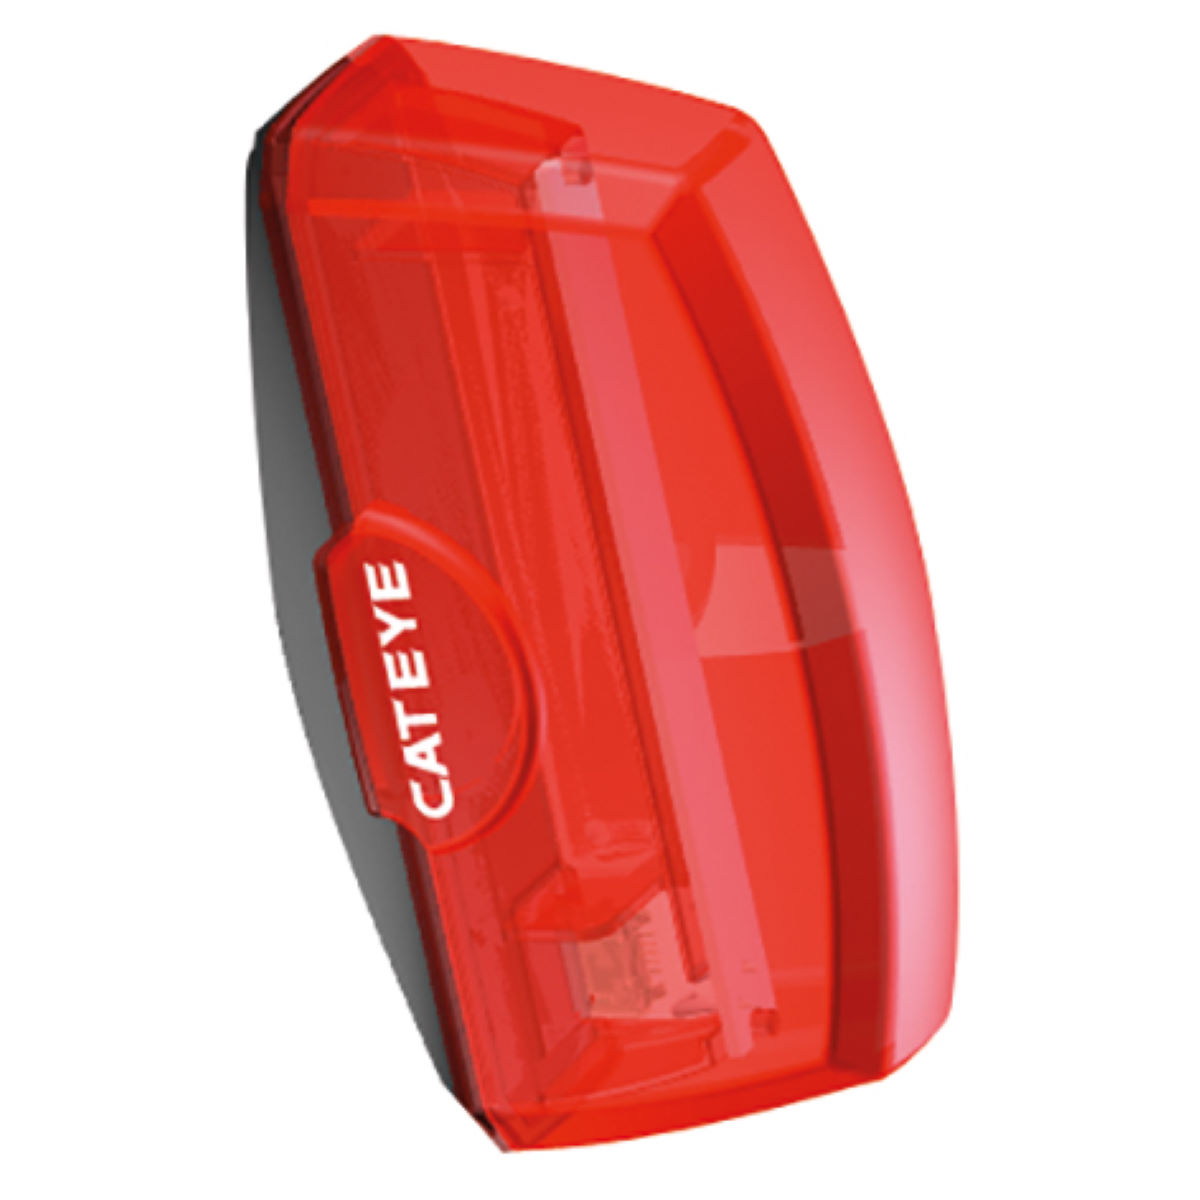 Cateye Rapid X3 100 Lumen Rear Light